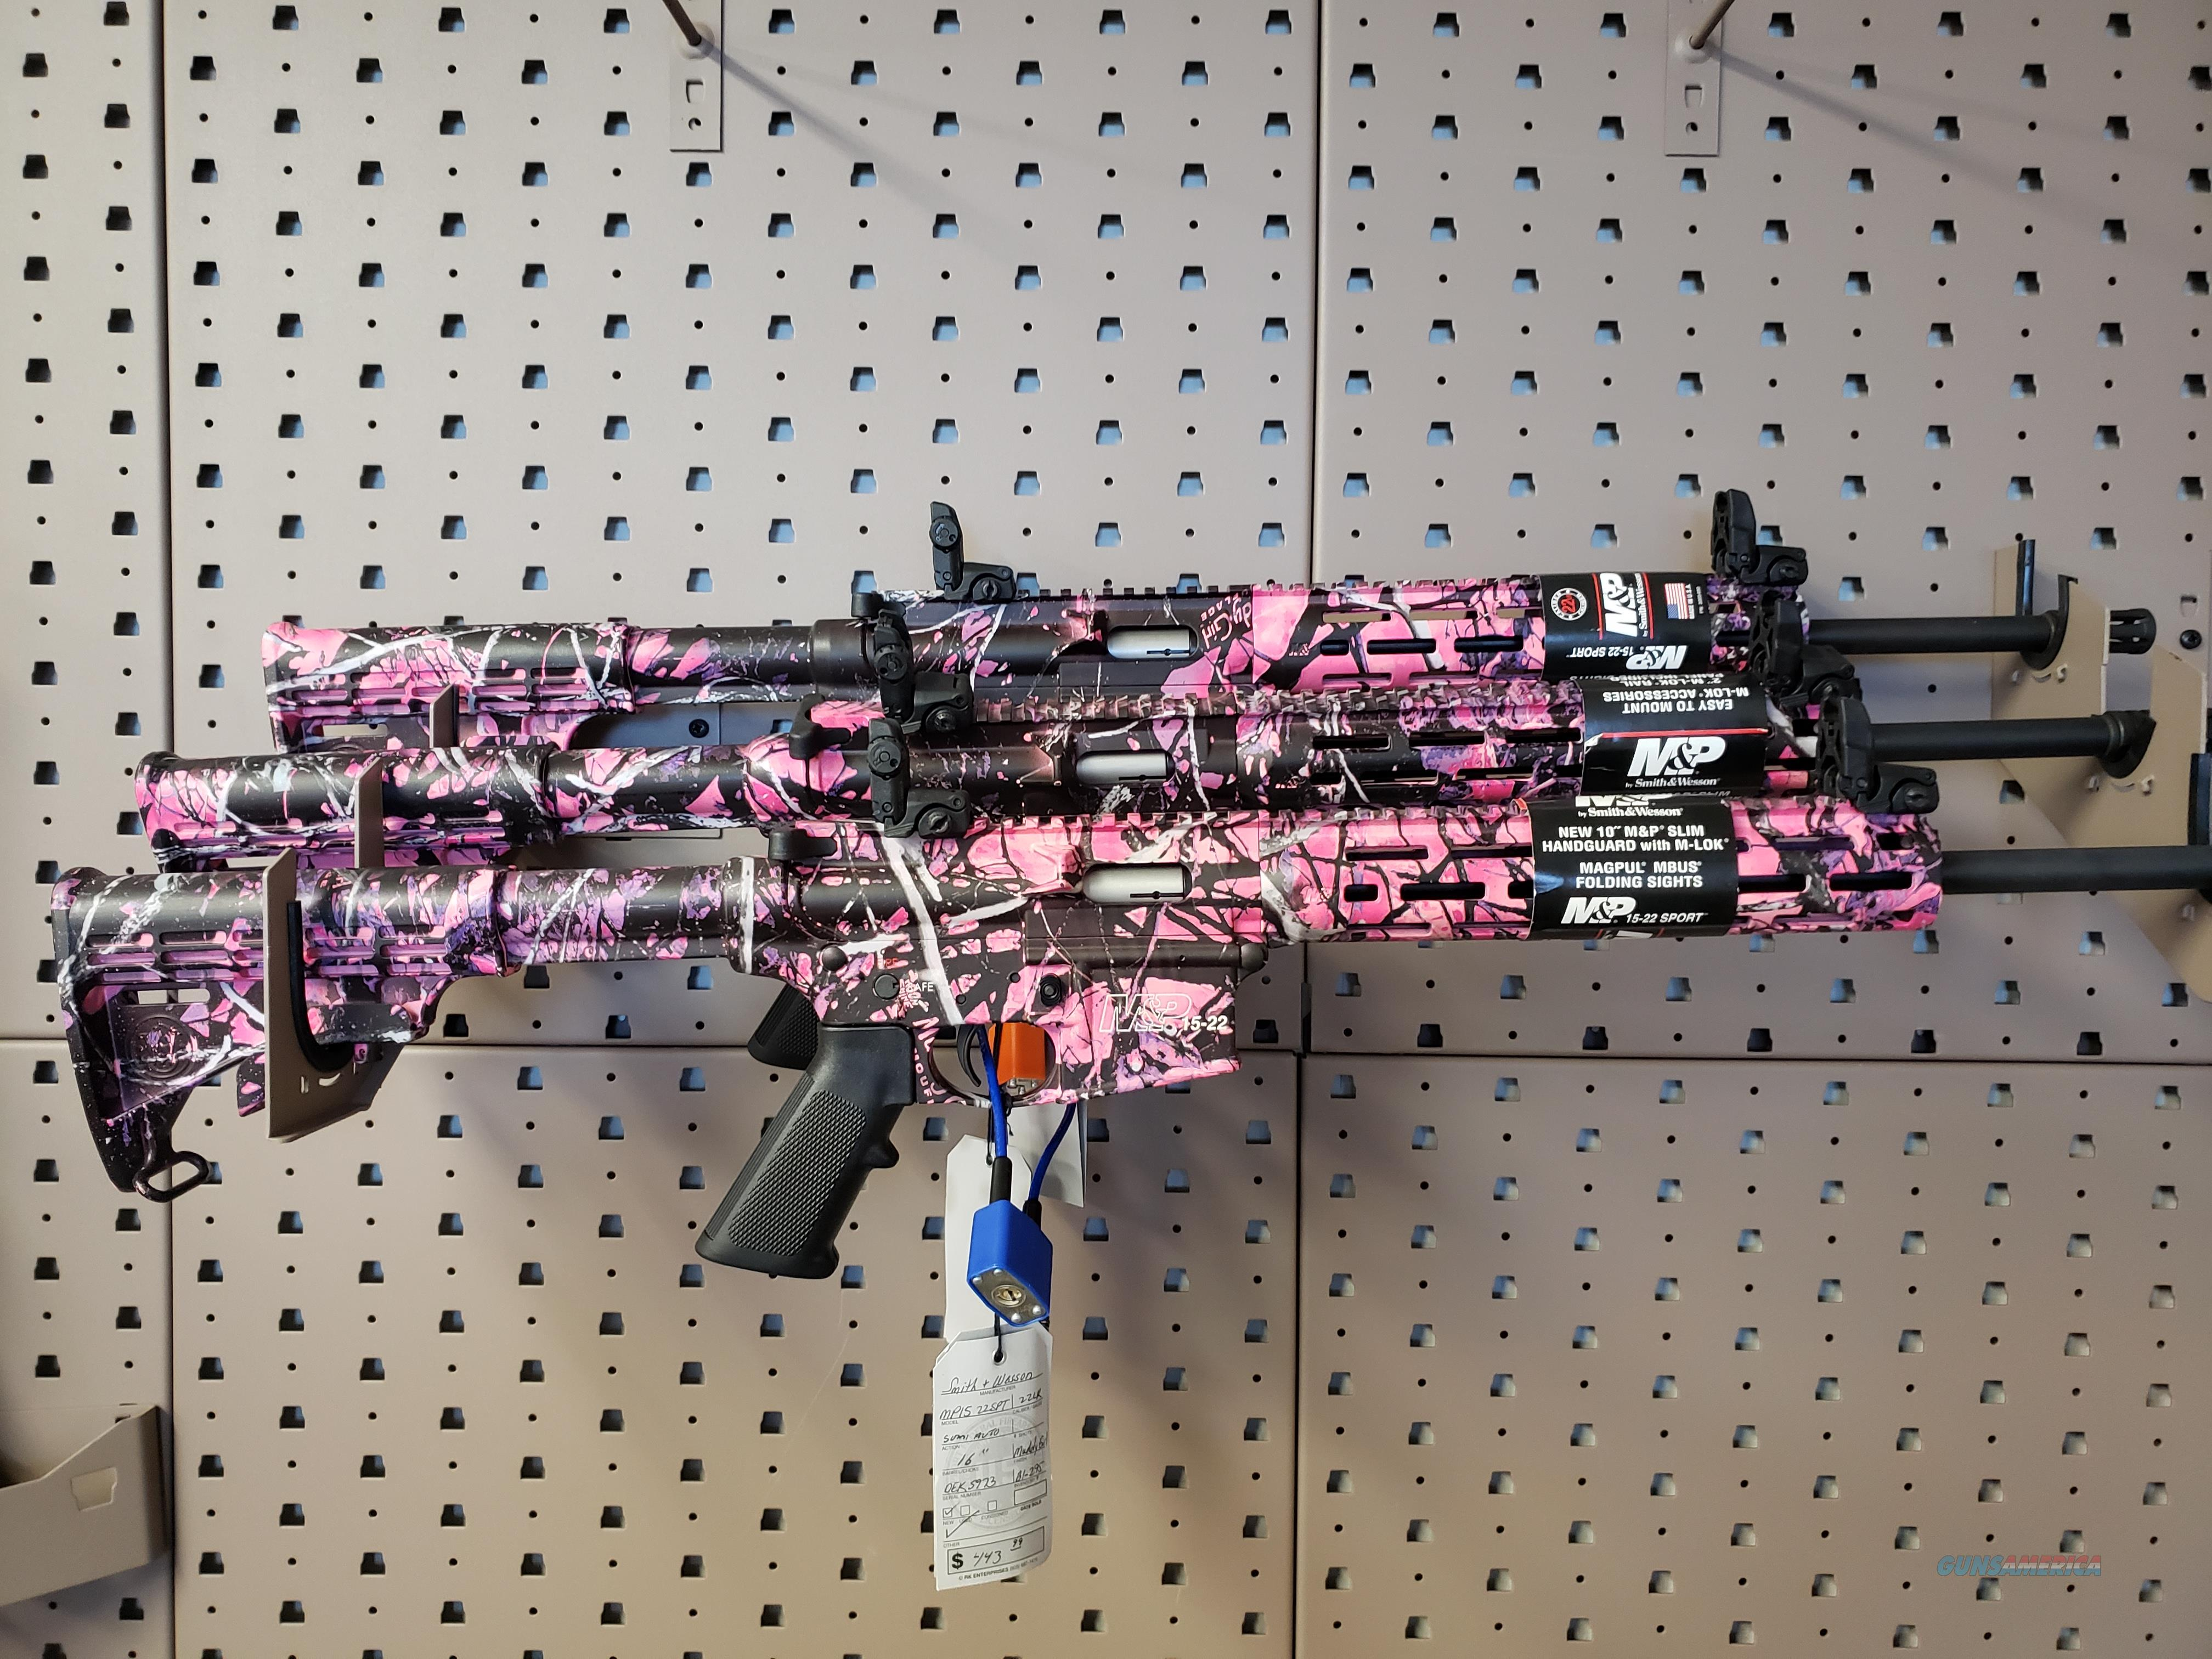 """SMITH & WESSON M&P15-22, 22LR, 16.5"""" BARREL, MUDDY GIRL FINISH, 6 POSITION COLLAPSIBLE STOCK, 10"""" M&P SLIM HANDGUARD WITH MAGPUL M-LOK, THREADED BARREL, 25RD, FLIP UP FRONT AND REAR SIGHTS 10212  Guns > Rifles > Smith & Wesson Rifles > M&P"""